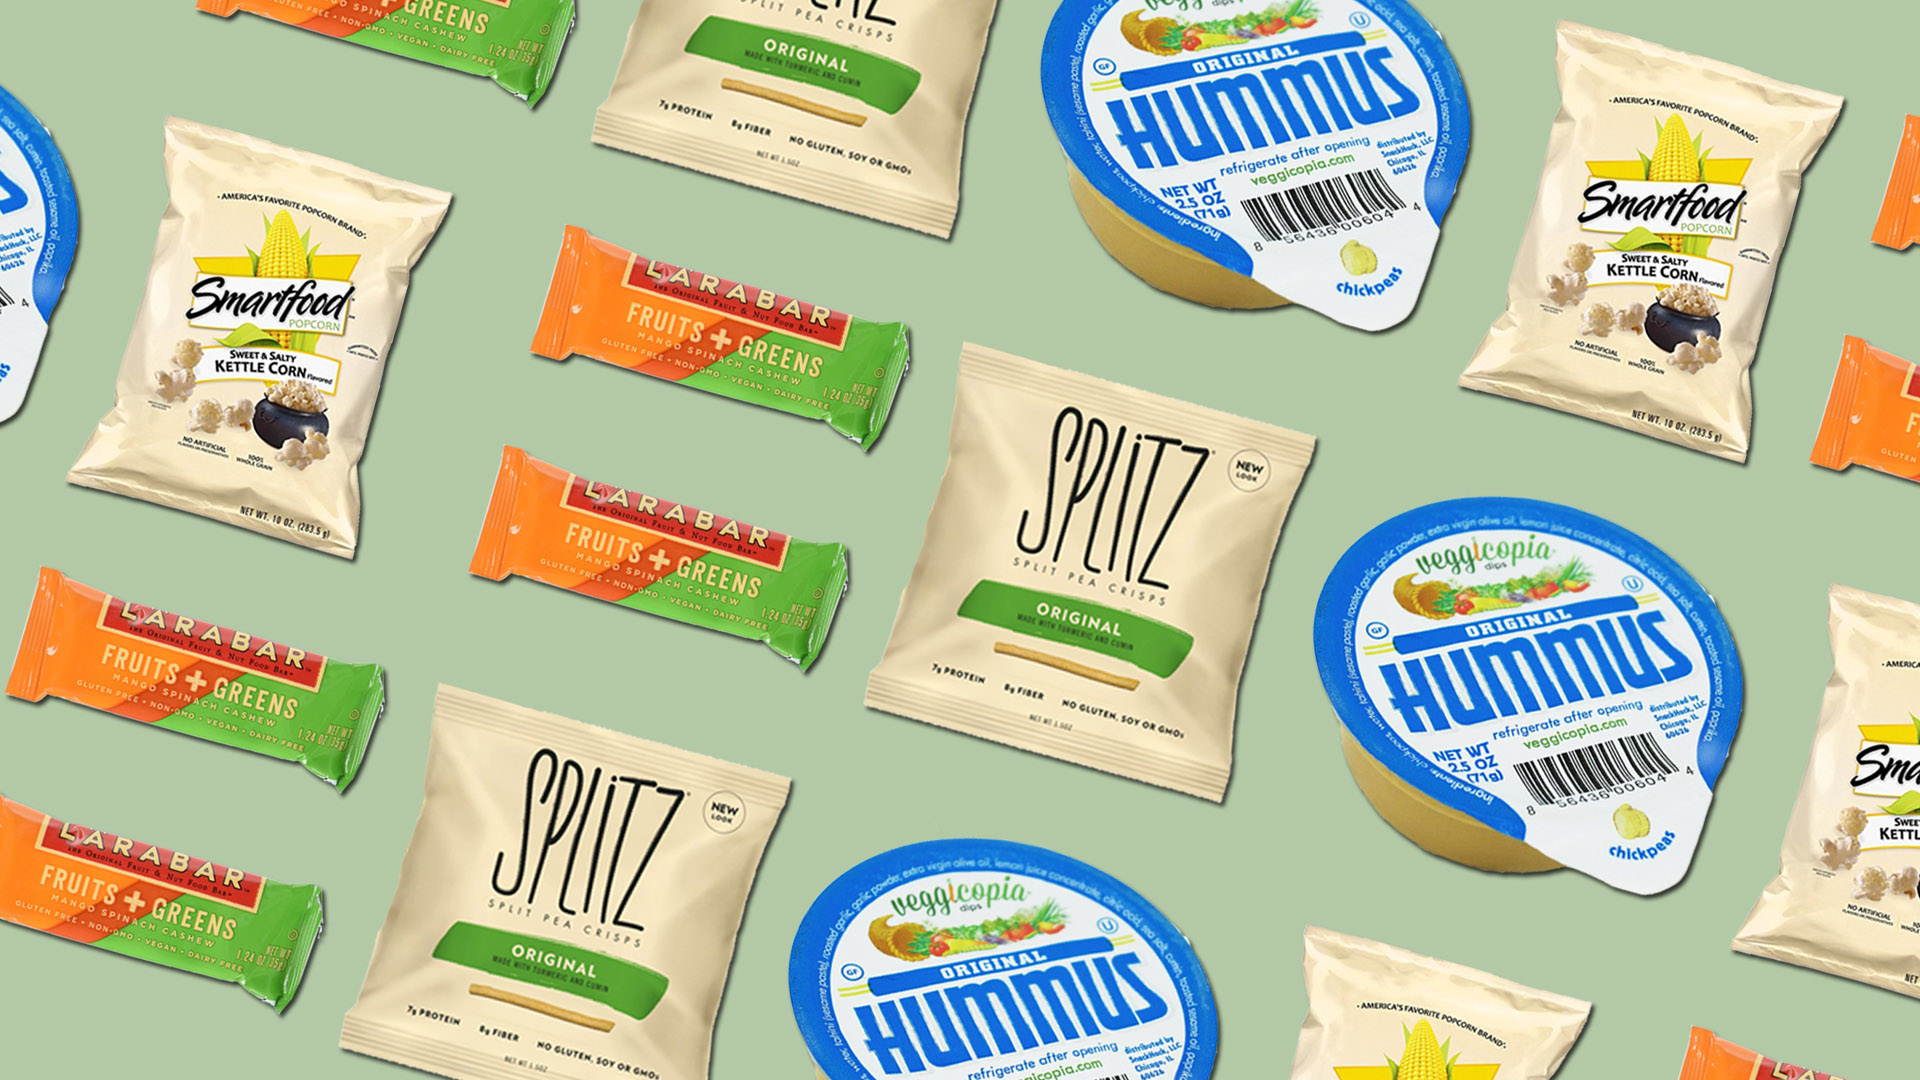 6 Nutritionist-Approved Snacks to Eat on the Road